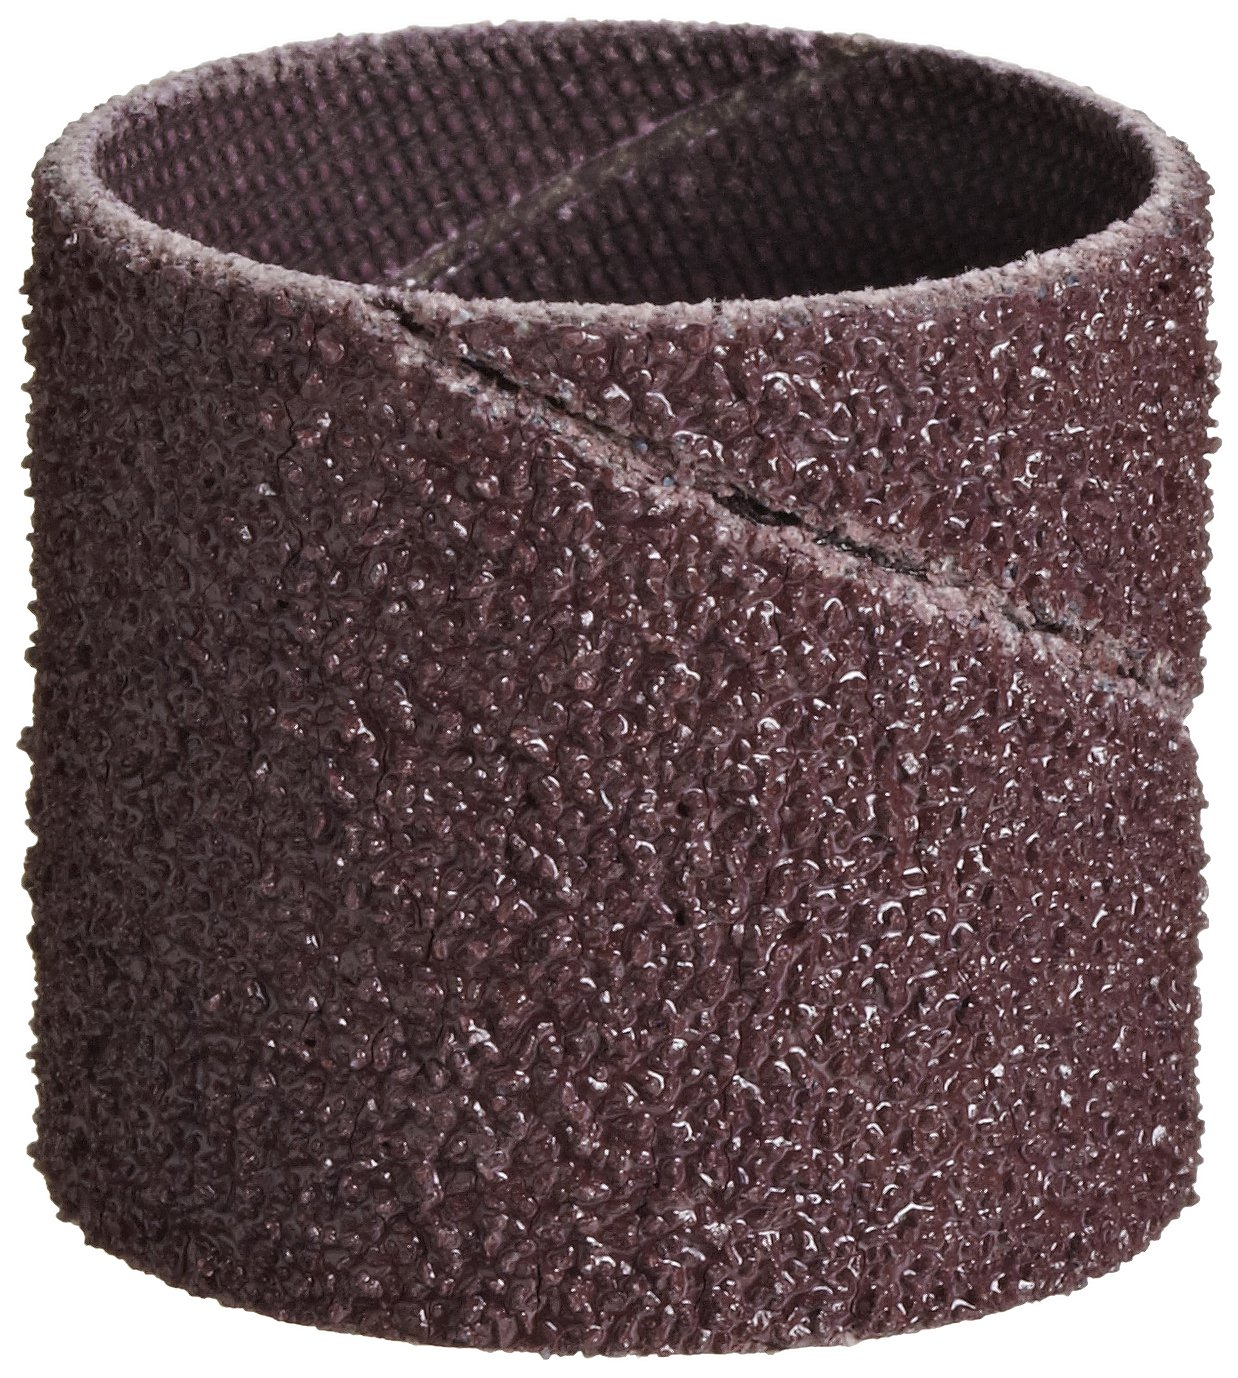 Aluminum Oxide 50 Grit Pack of 100 3M Cloth Band 341D 1 Diameter x 1 Width